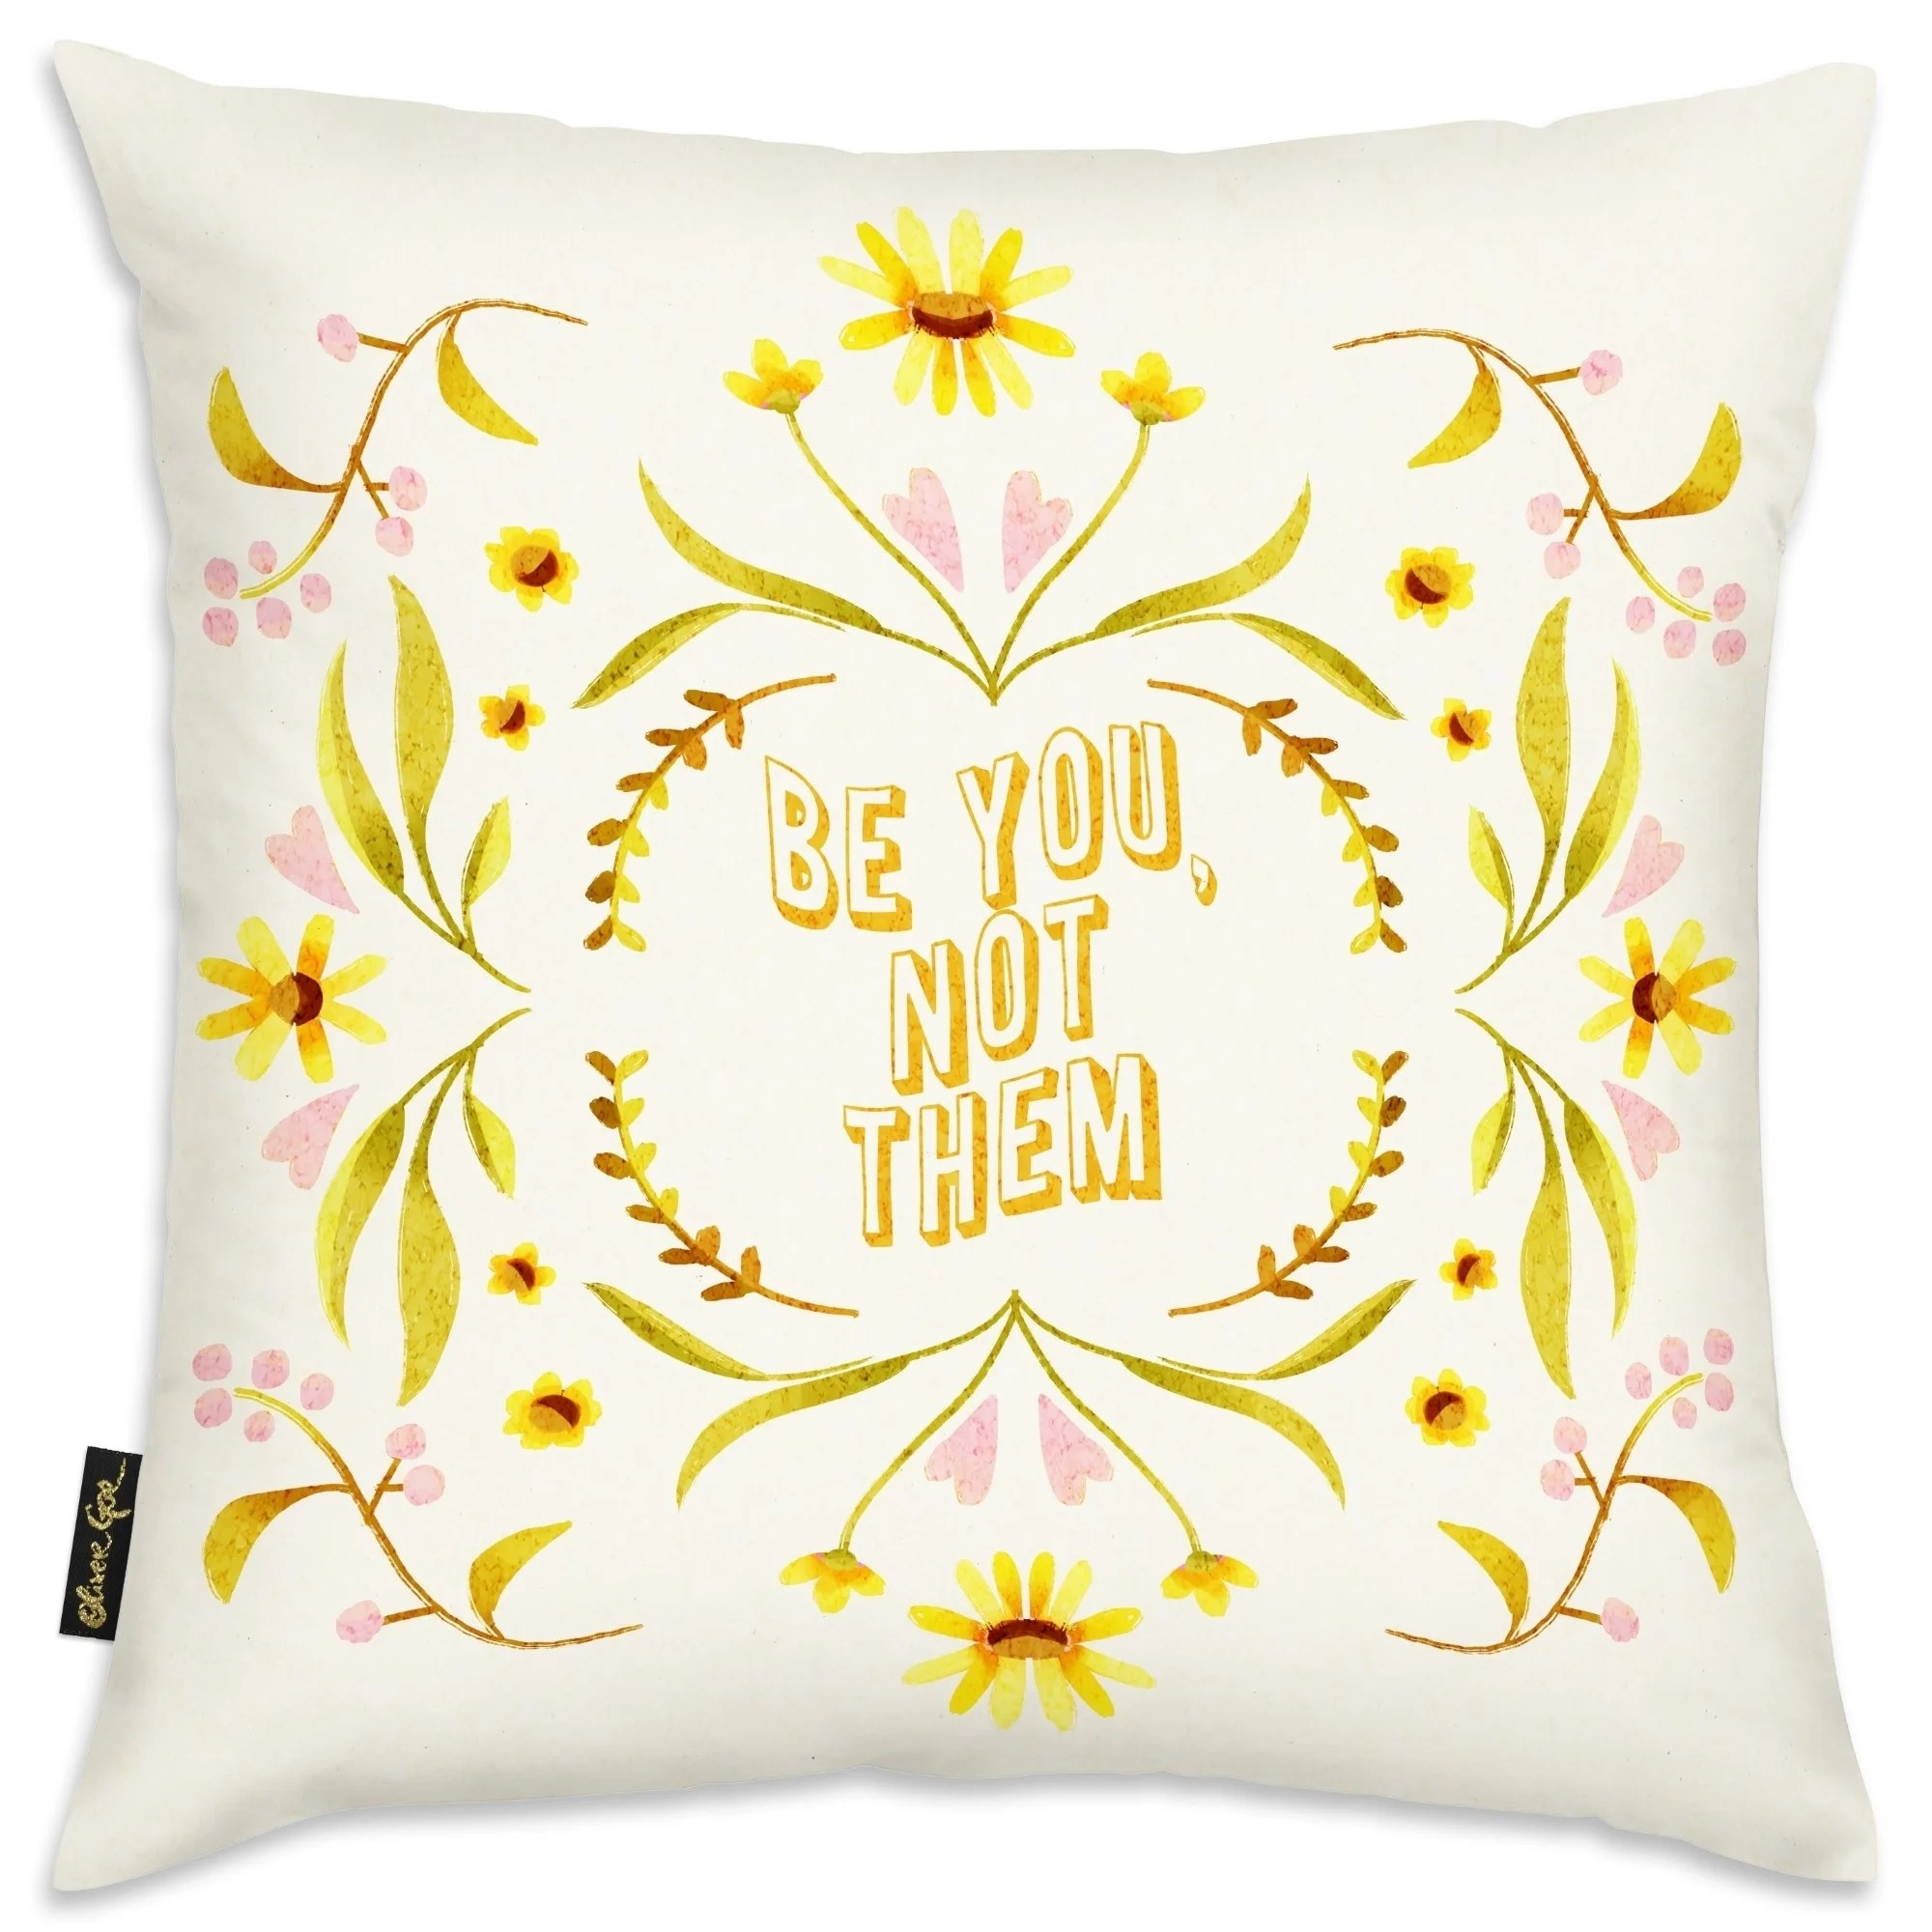 oliver gal be you not them typography and quotes decorative throw pillow family quotes and sayings yellow green